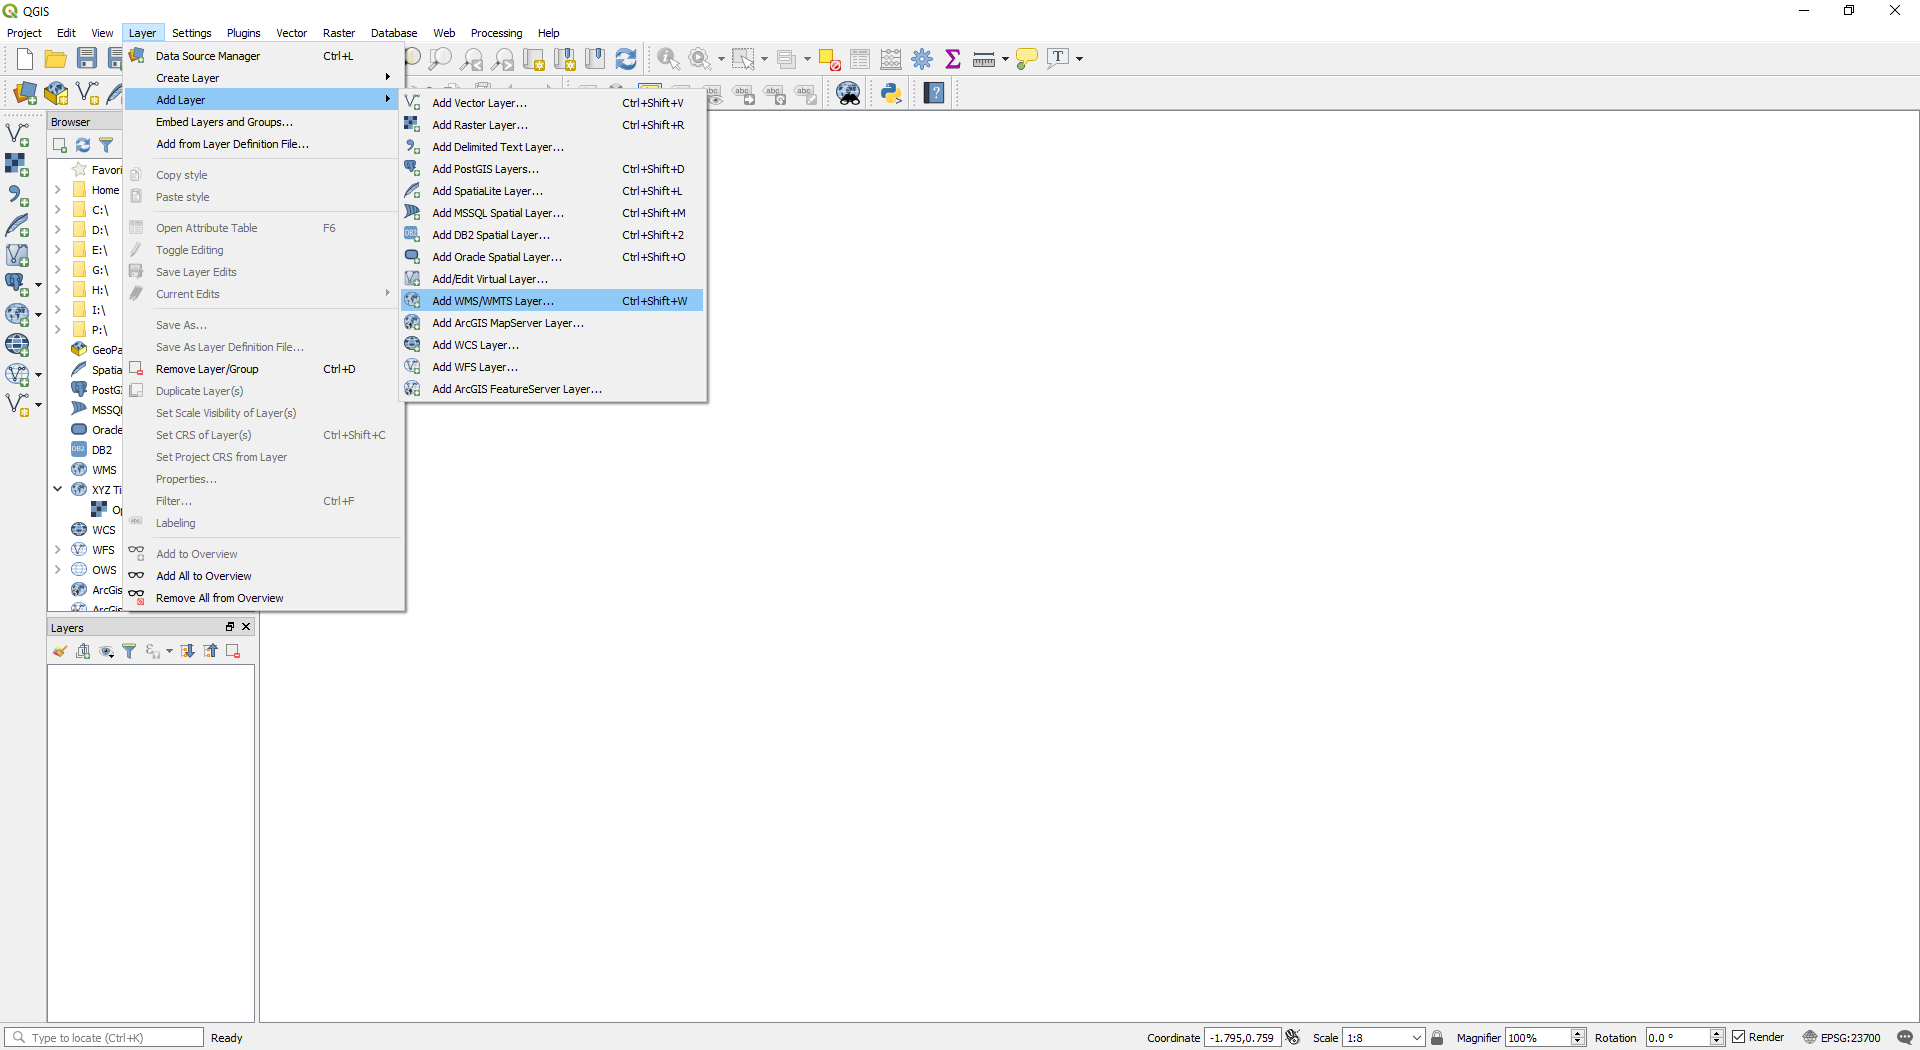 QGIS - Add WMS/WMTS Layer